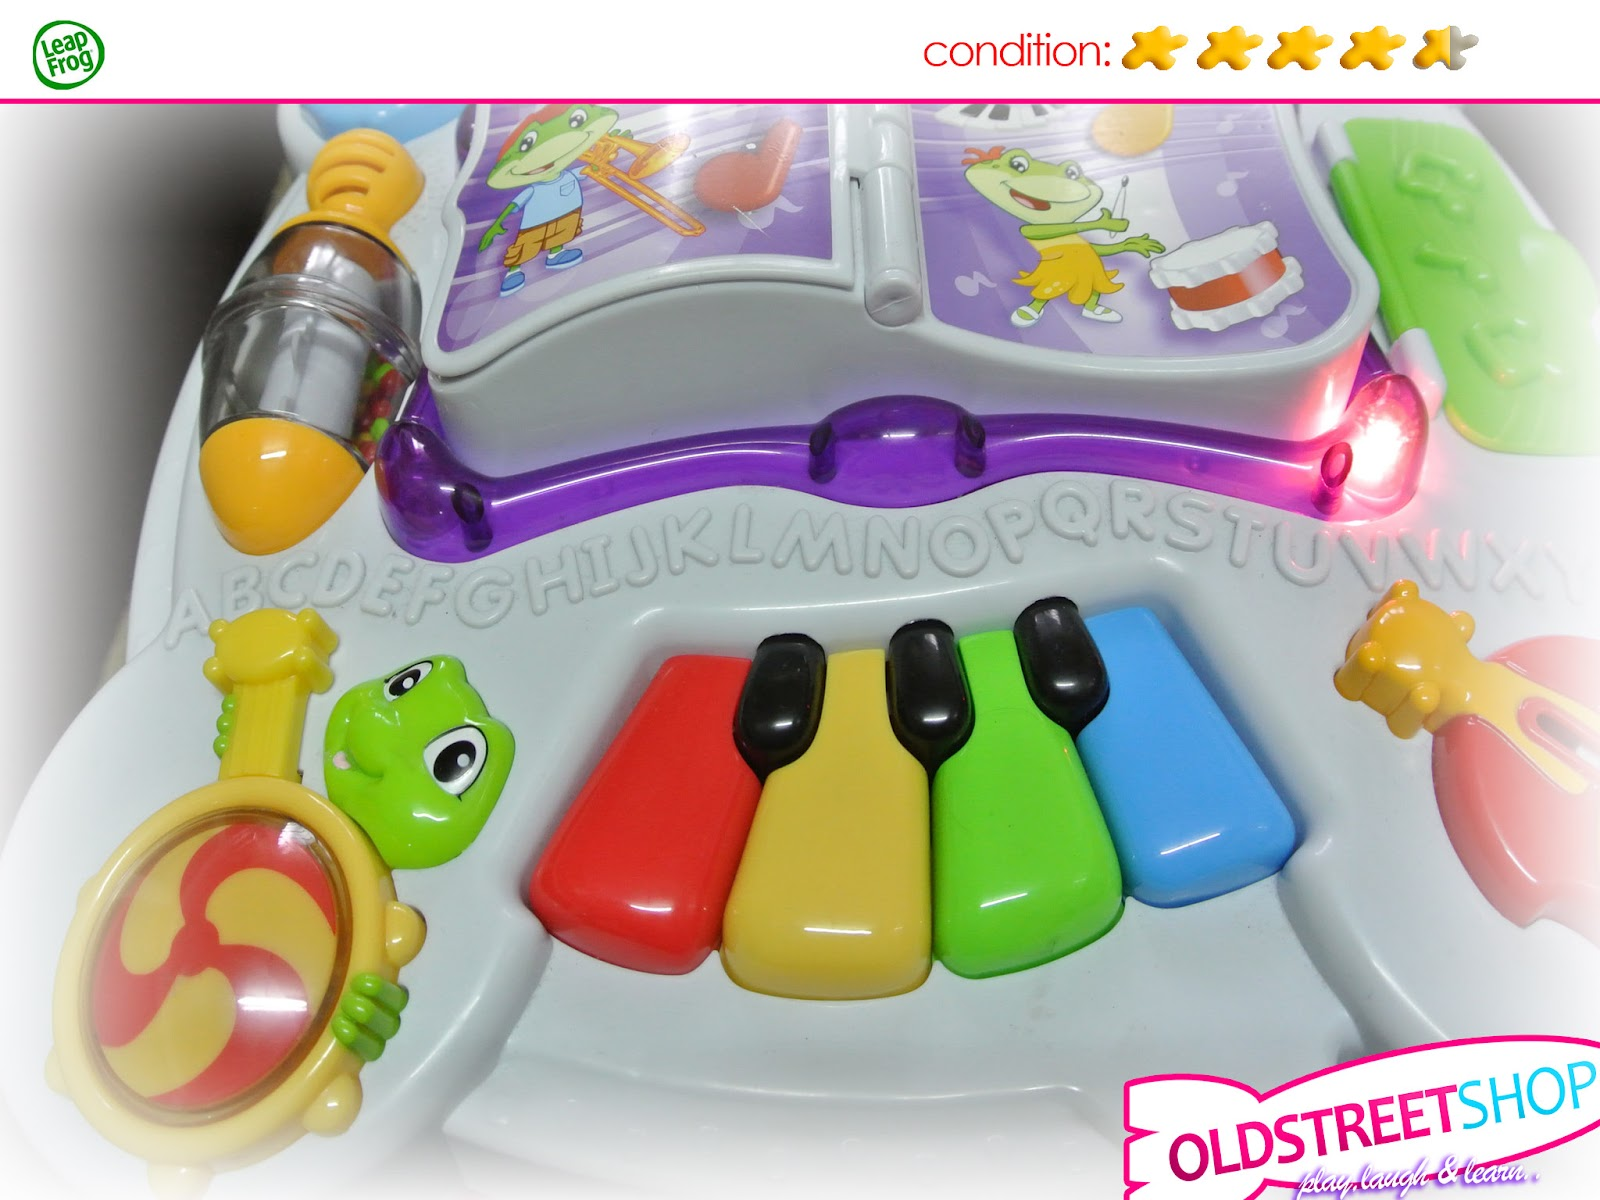 Oldstreetshop Leapfrog Learn Groove Pink Learning Table